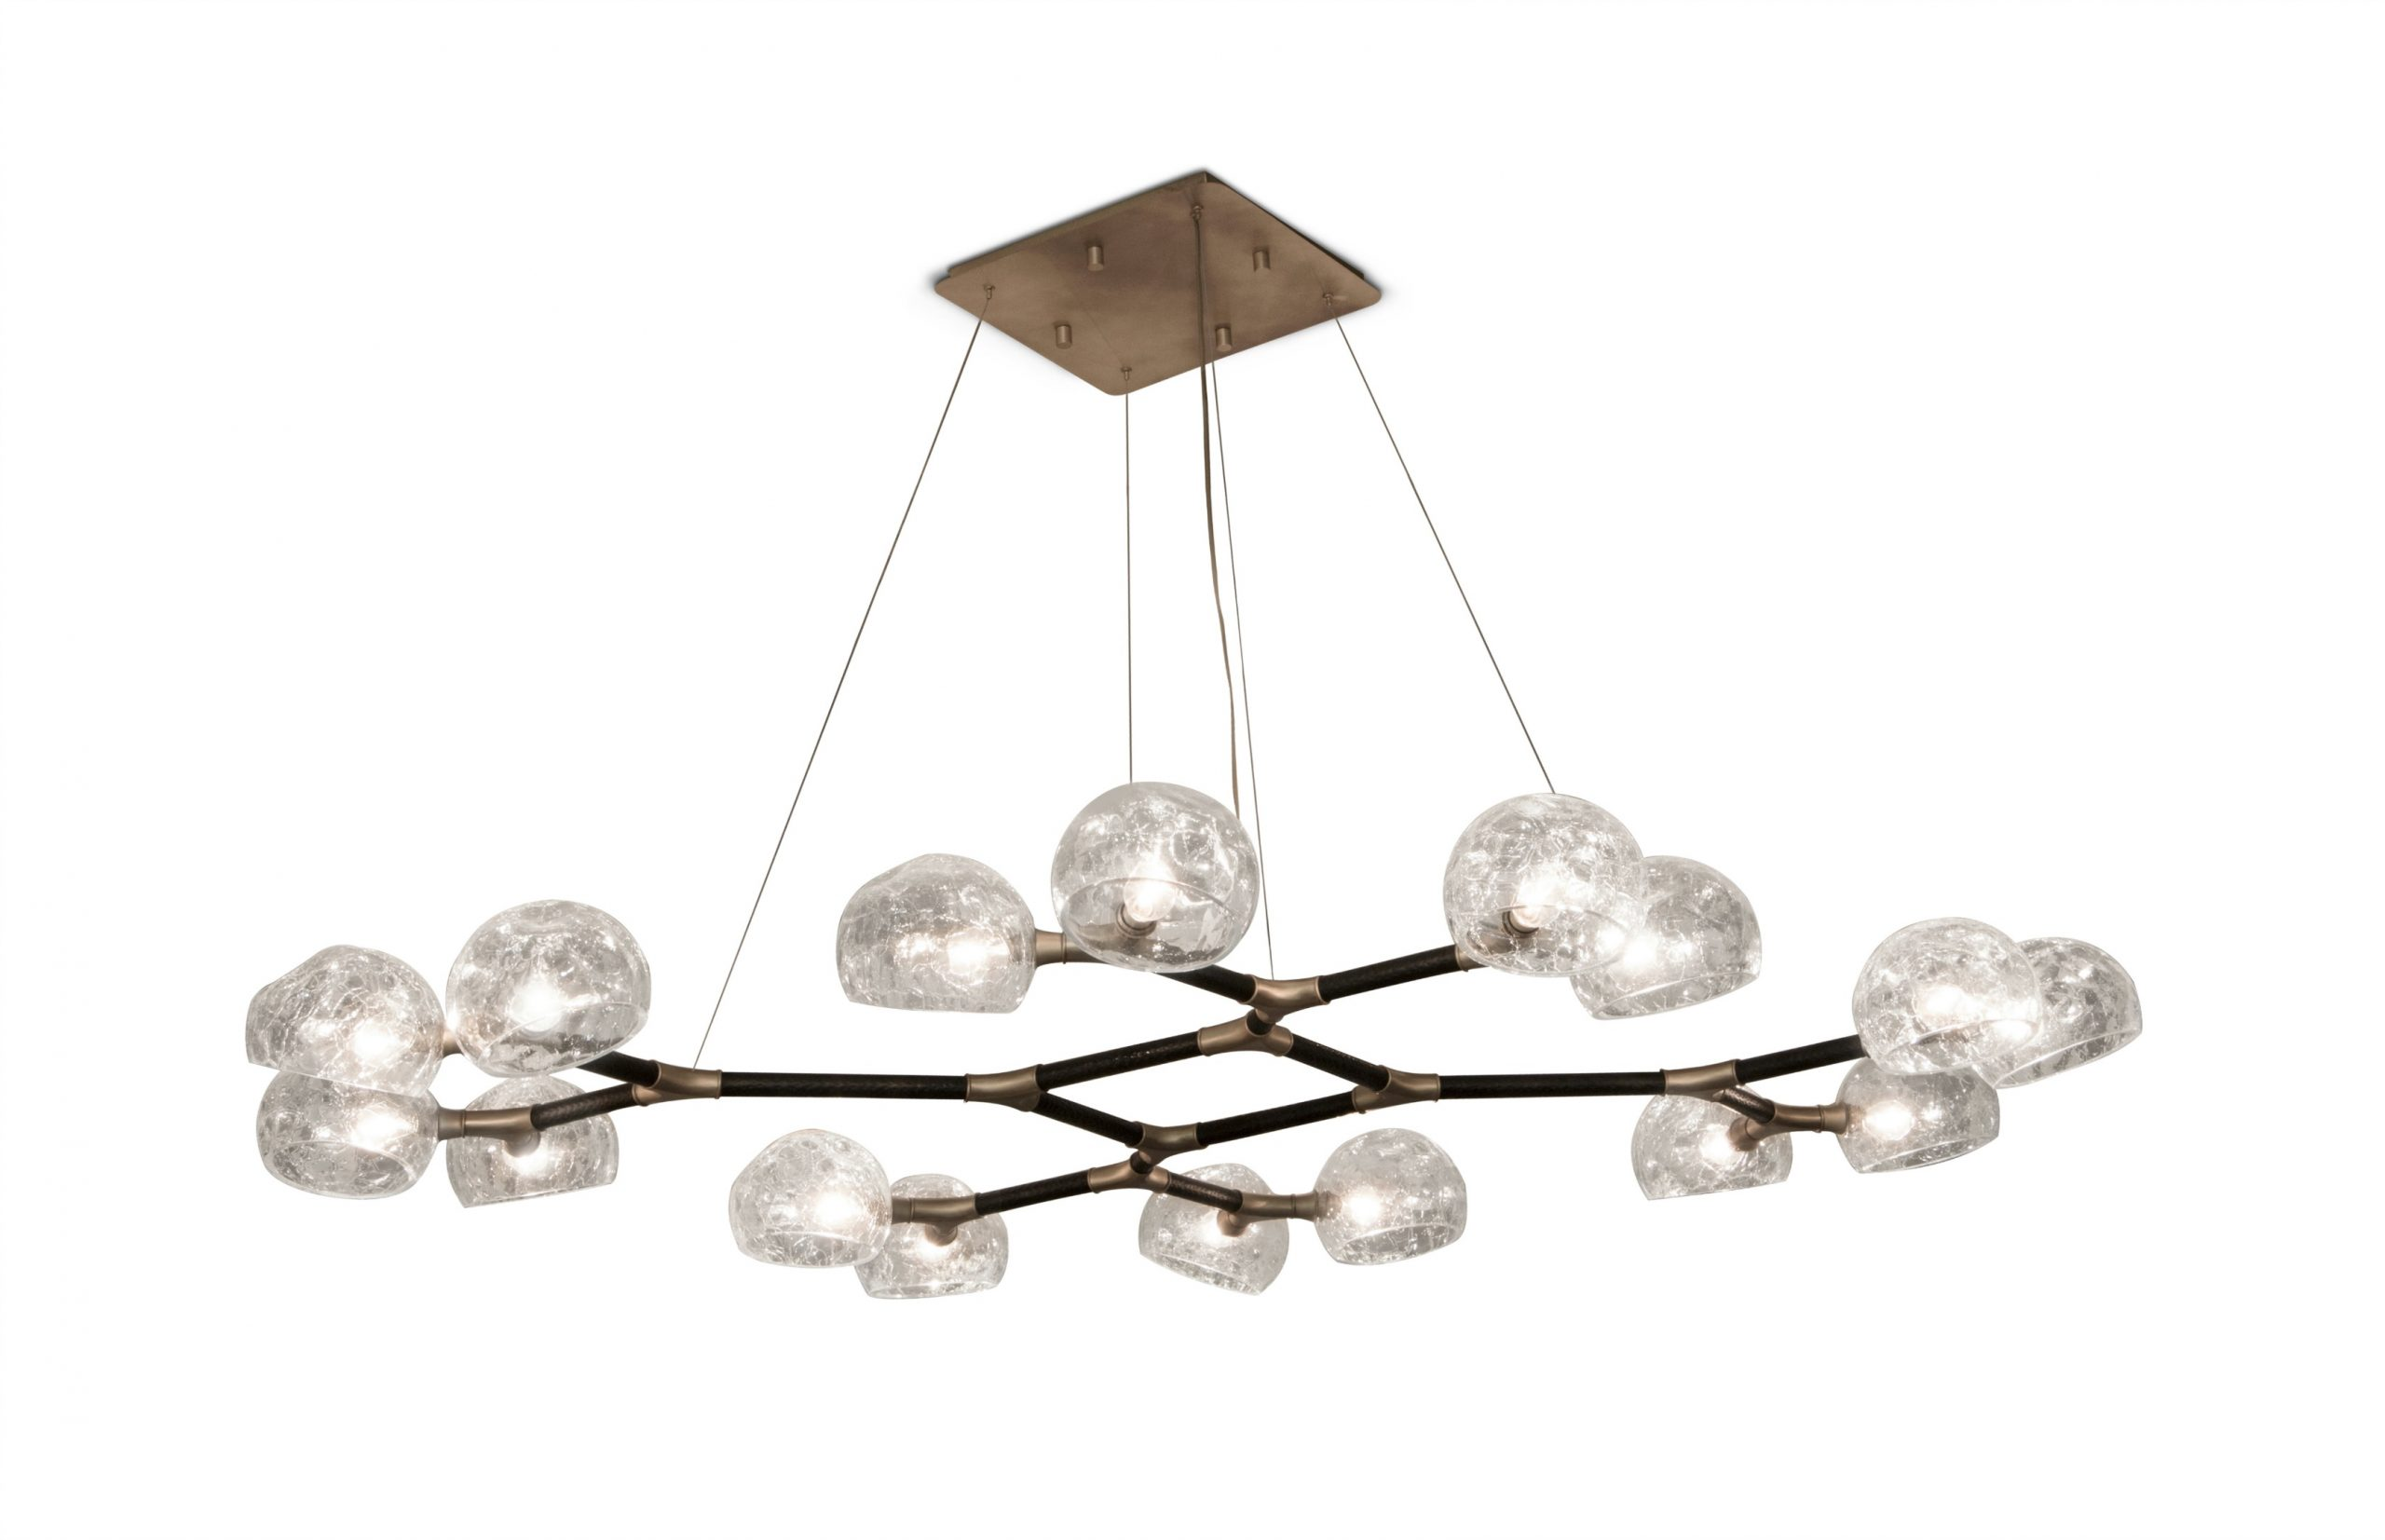 BRABBU Products to Integrate Your Home Décor in 2021 brabbu productsBRABBU Products to Integrate Your Home Décor in 2021horus suspension light 2 1 HR scaled